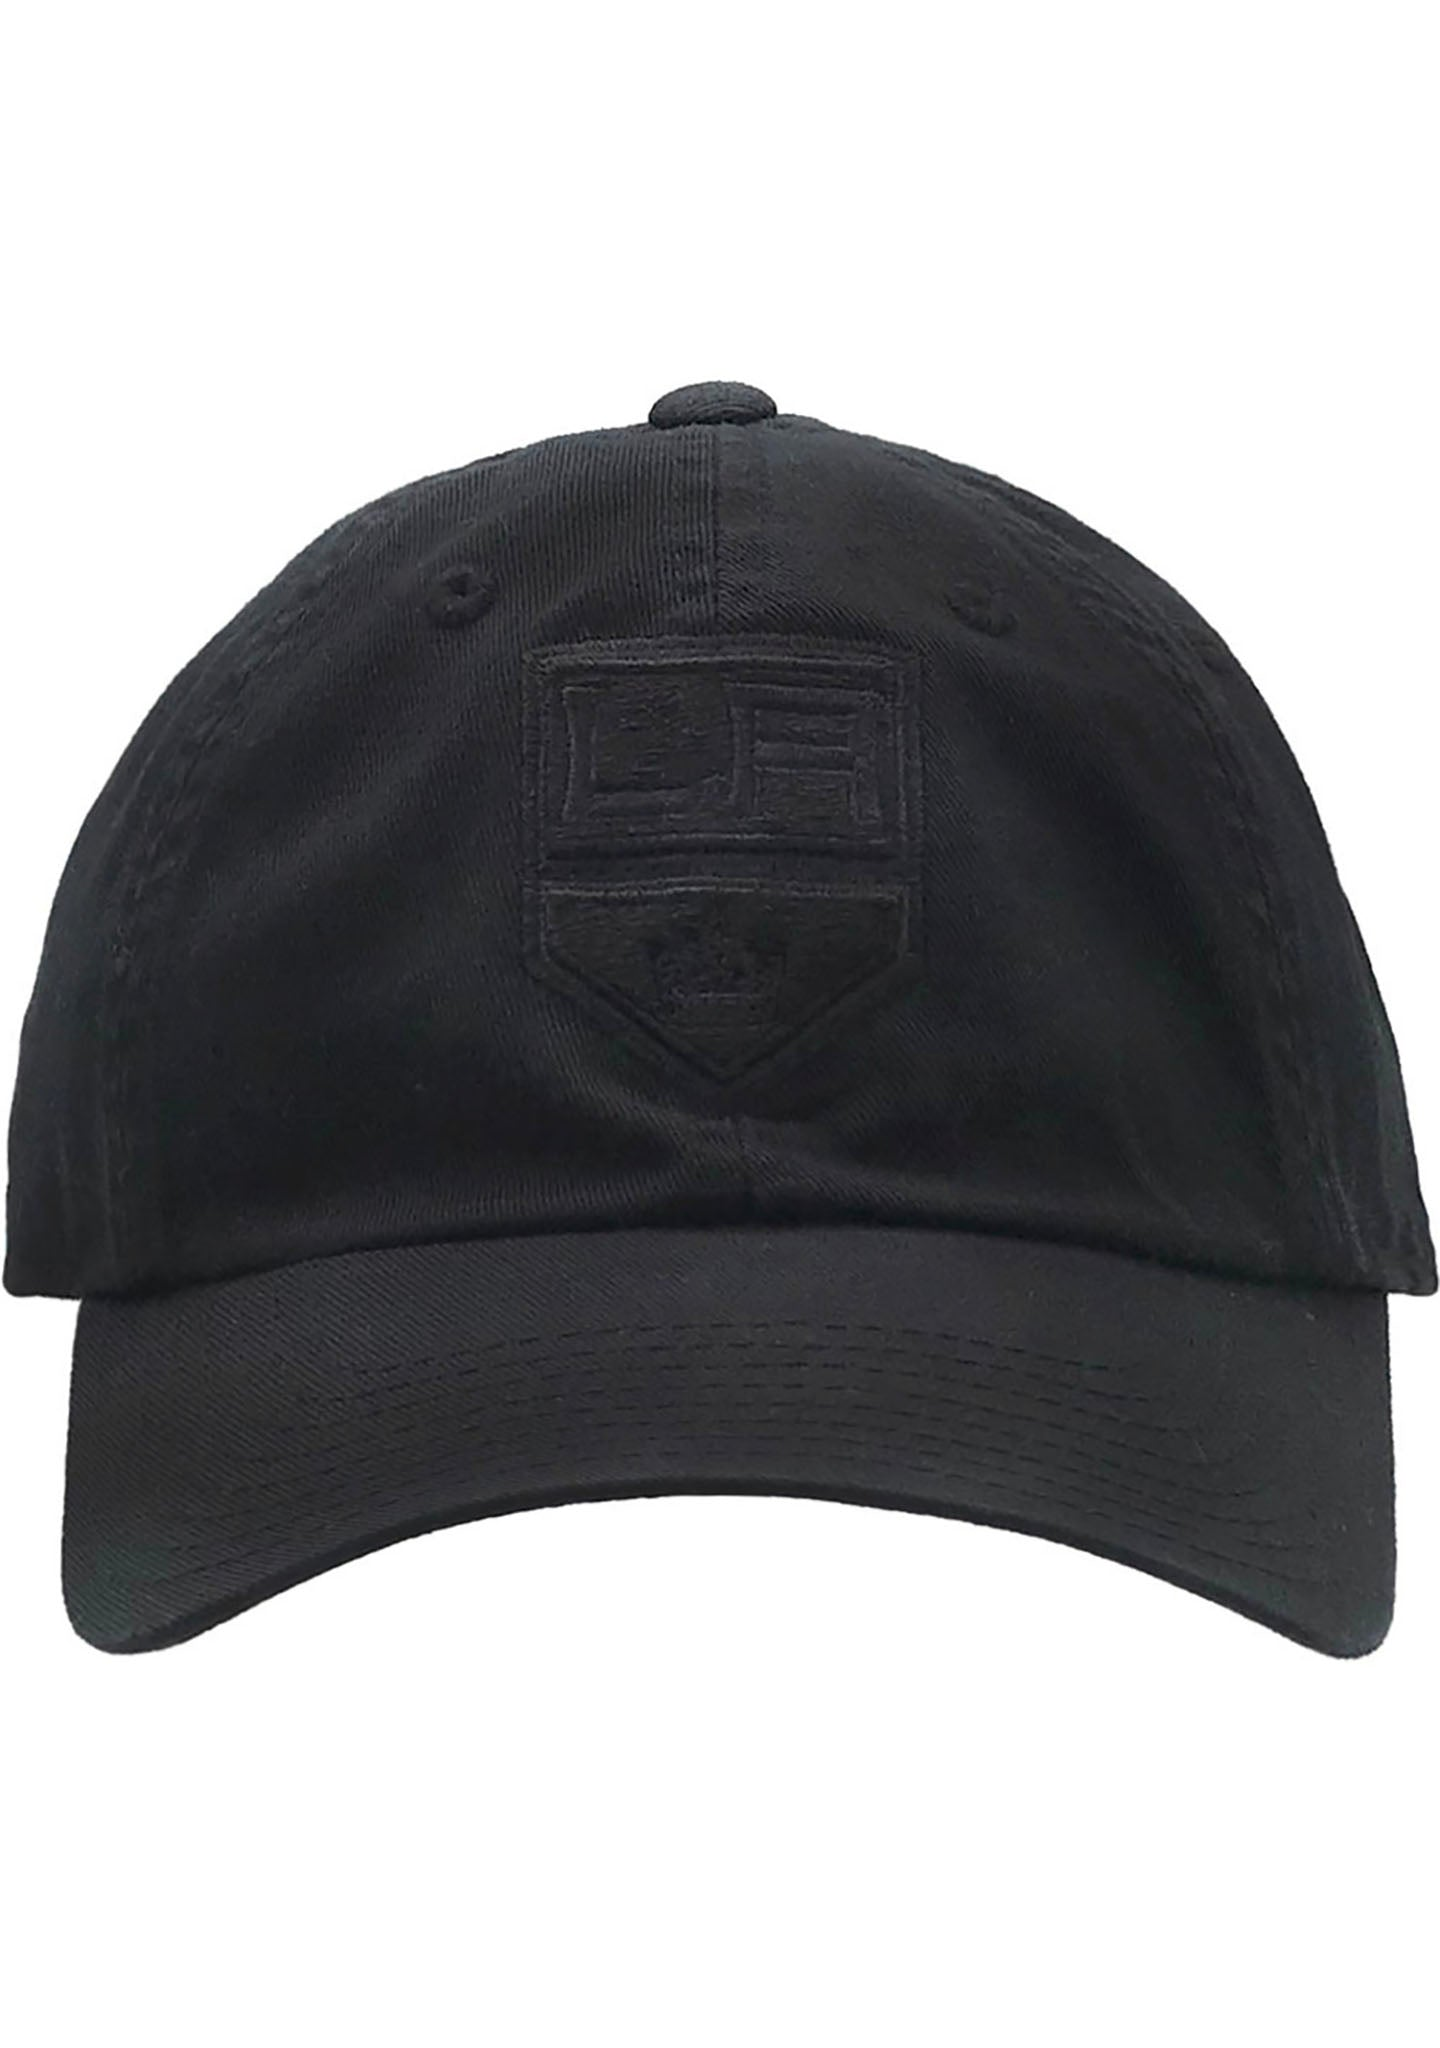 d6c2f918 LA Kings Blue Line Tonal Hat in Black